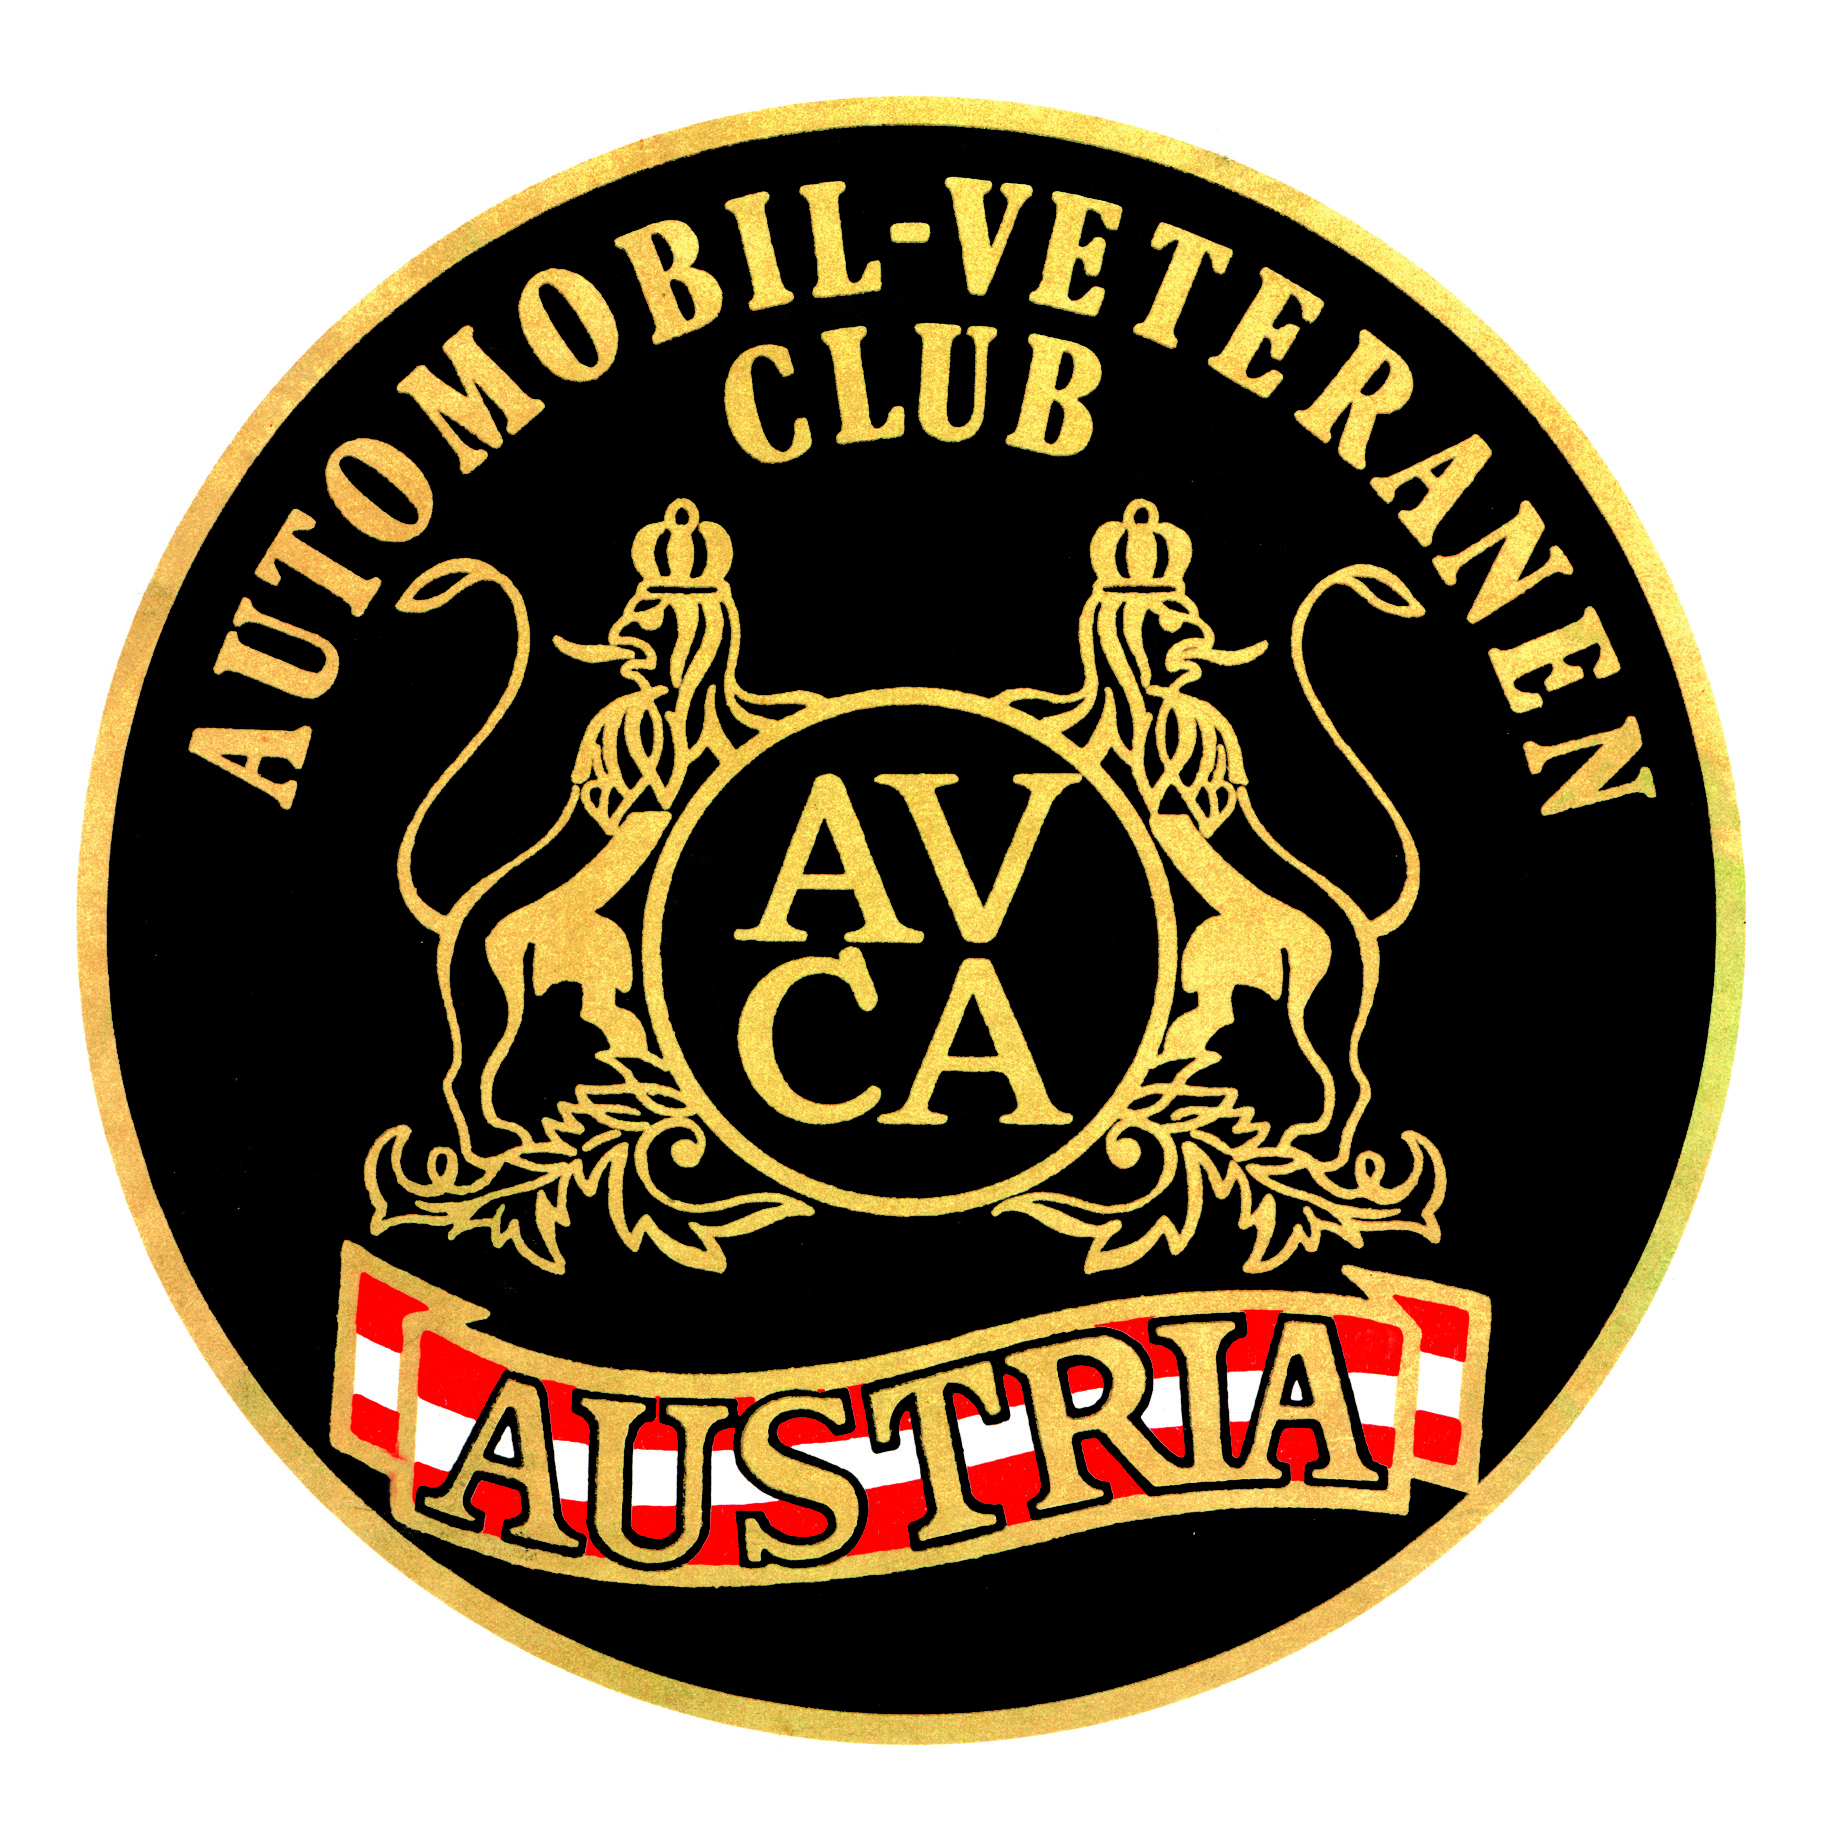 Automobil Veteranen Club Austria